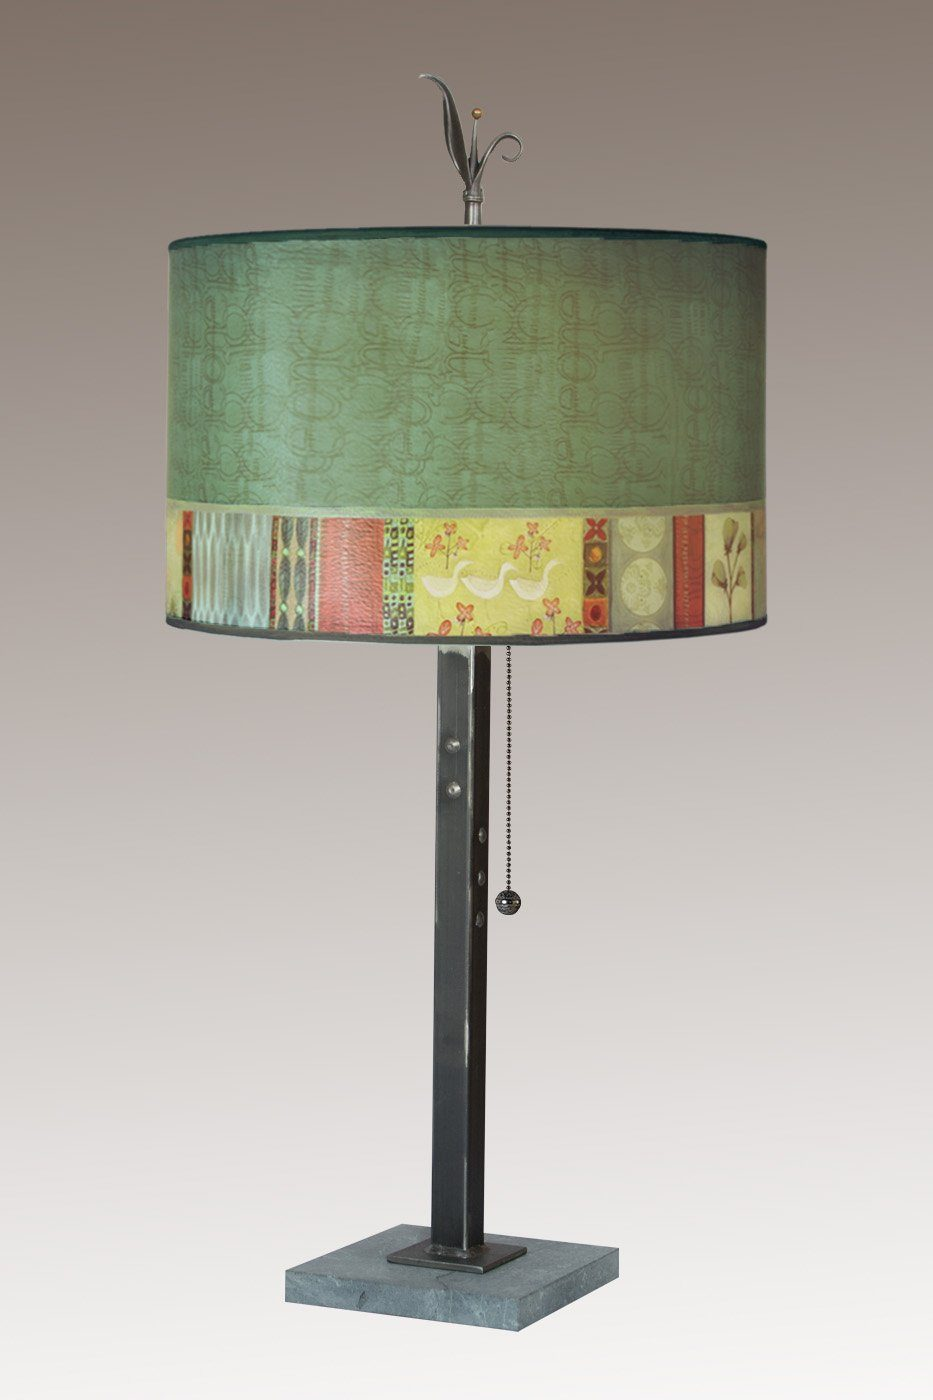 Steel Table Lamp on Marble with Large Drum Shade in Melody in Jade